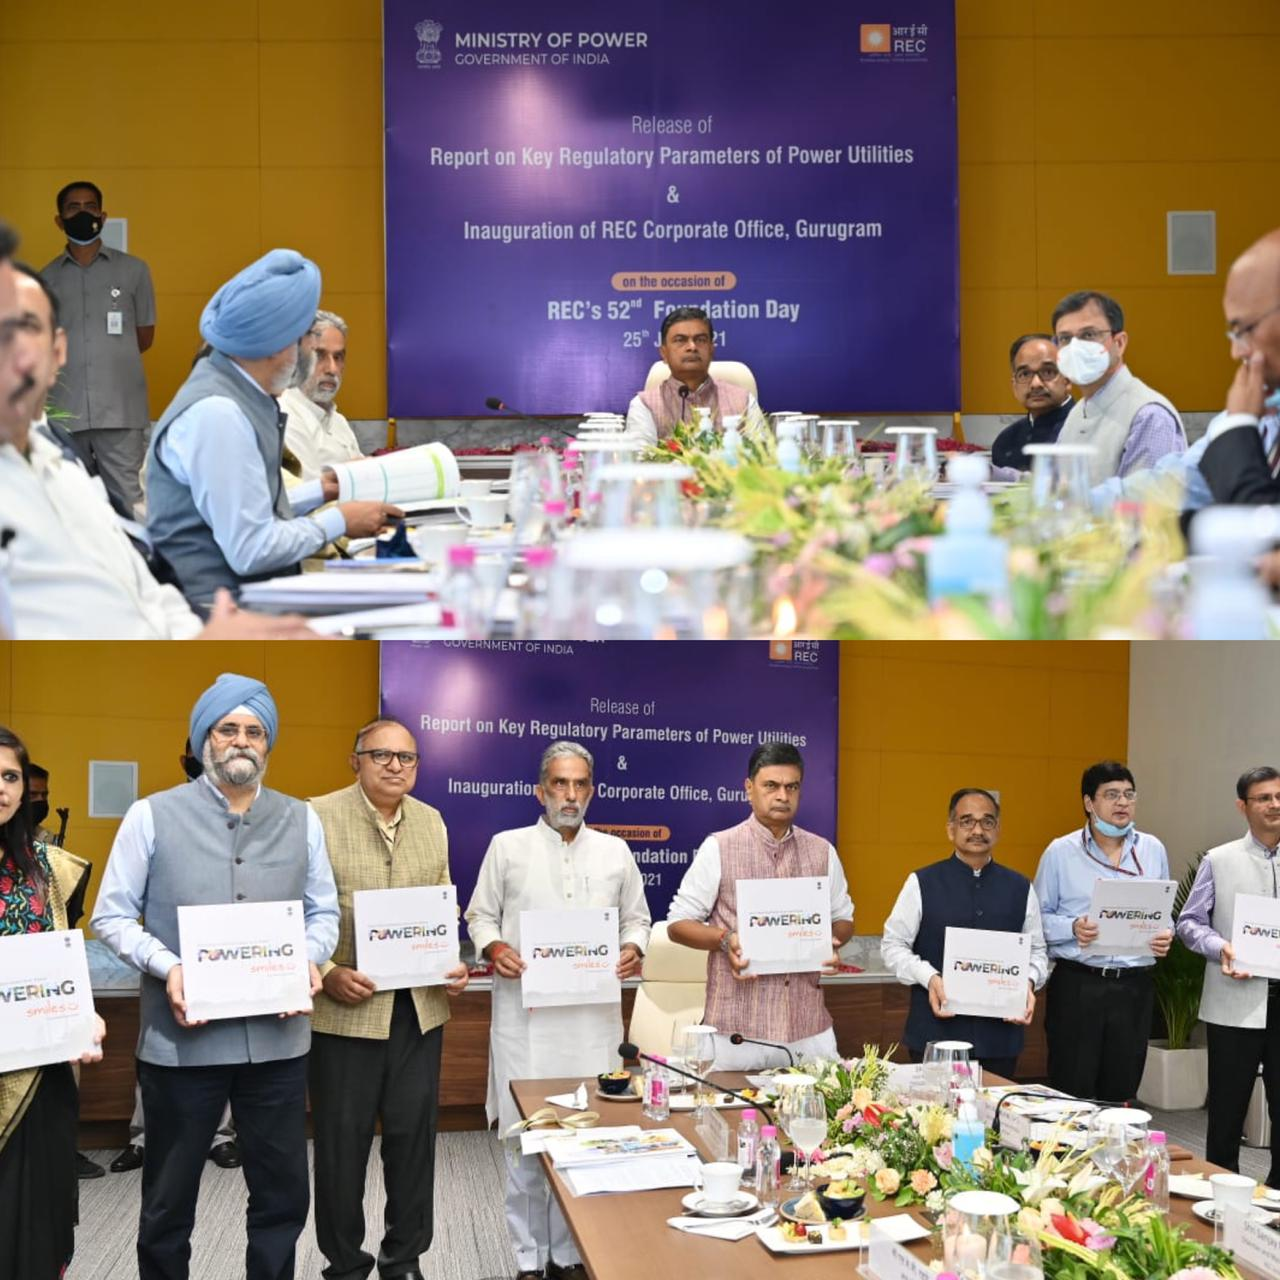 Union Power Minister And Minister of State For Power Release a Report on Key Regulatory Parameters of Power Utilities As Part of Azadi Ka Amrit Mahotsav